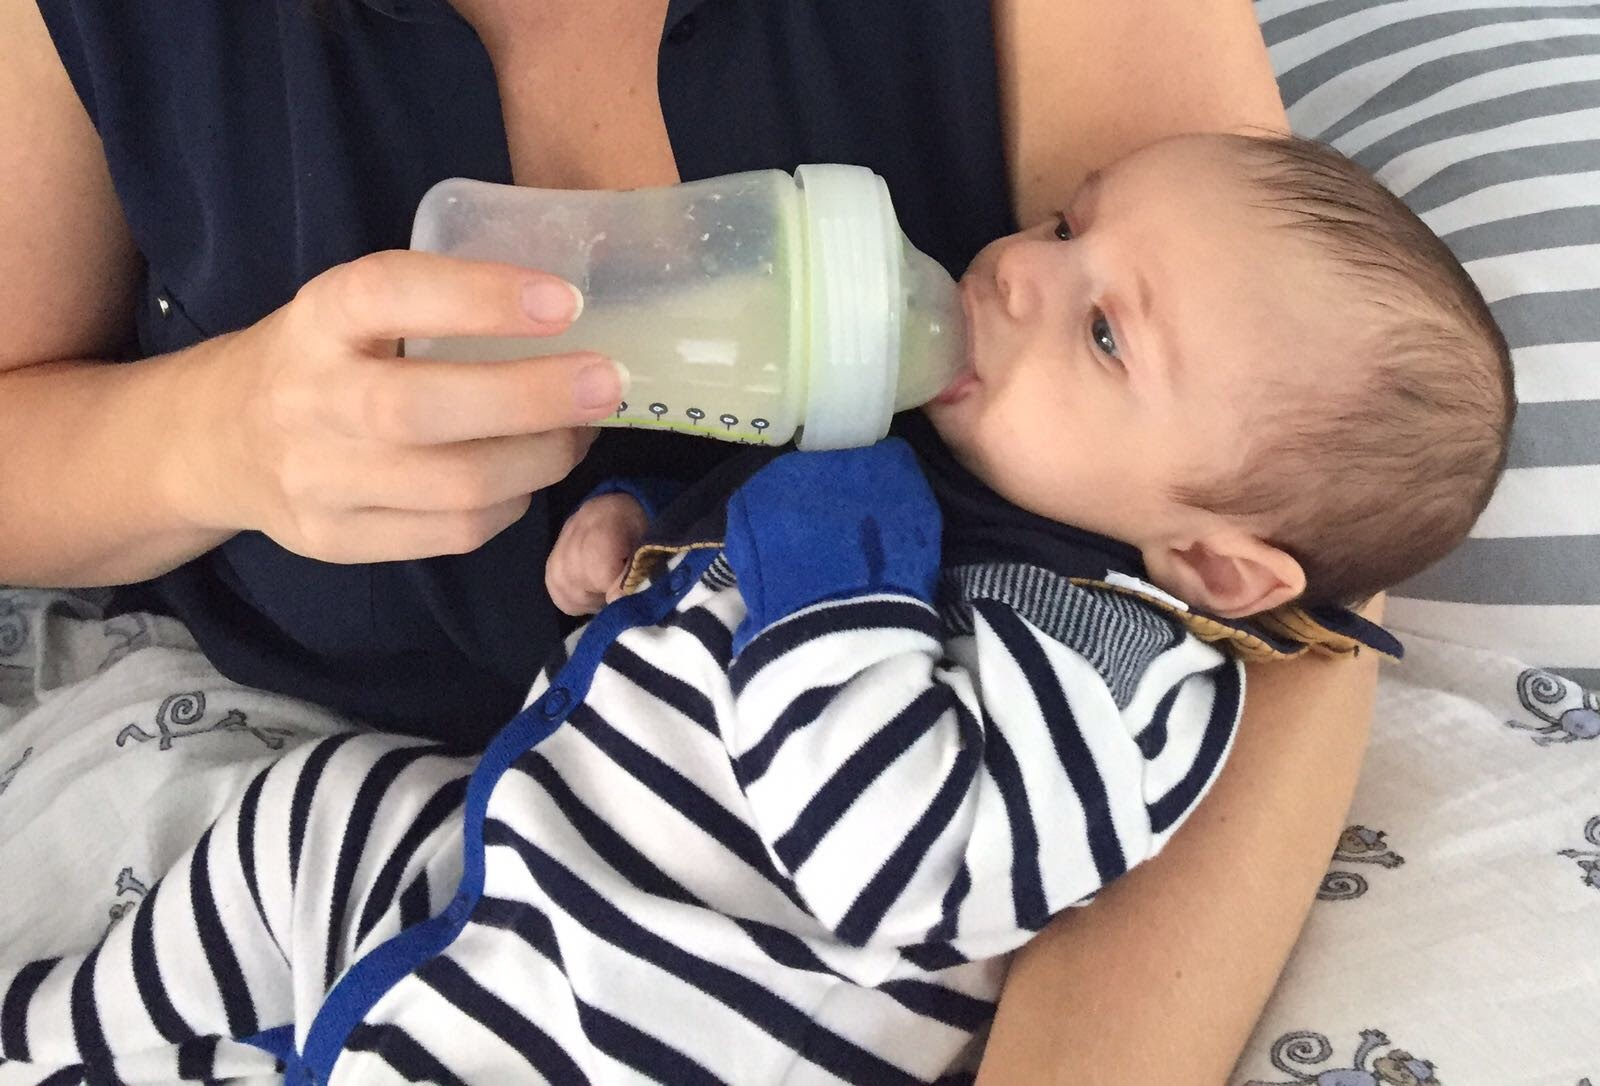 Feeding Leo donor milk using a special bottle meant to work with breastfeeding.